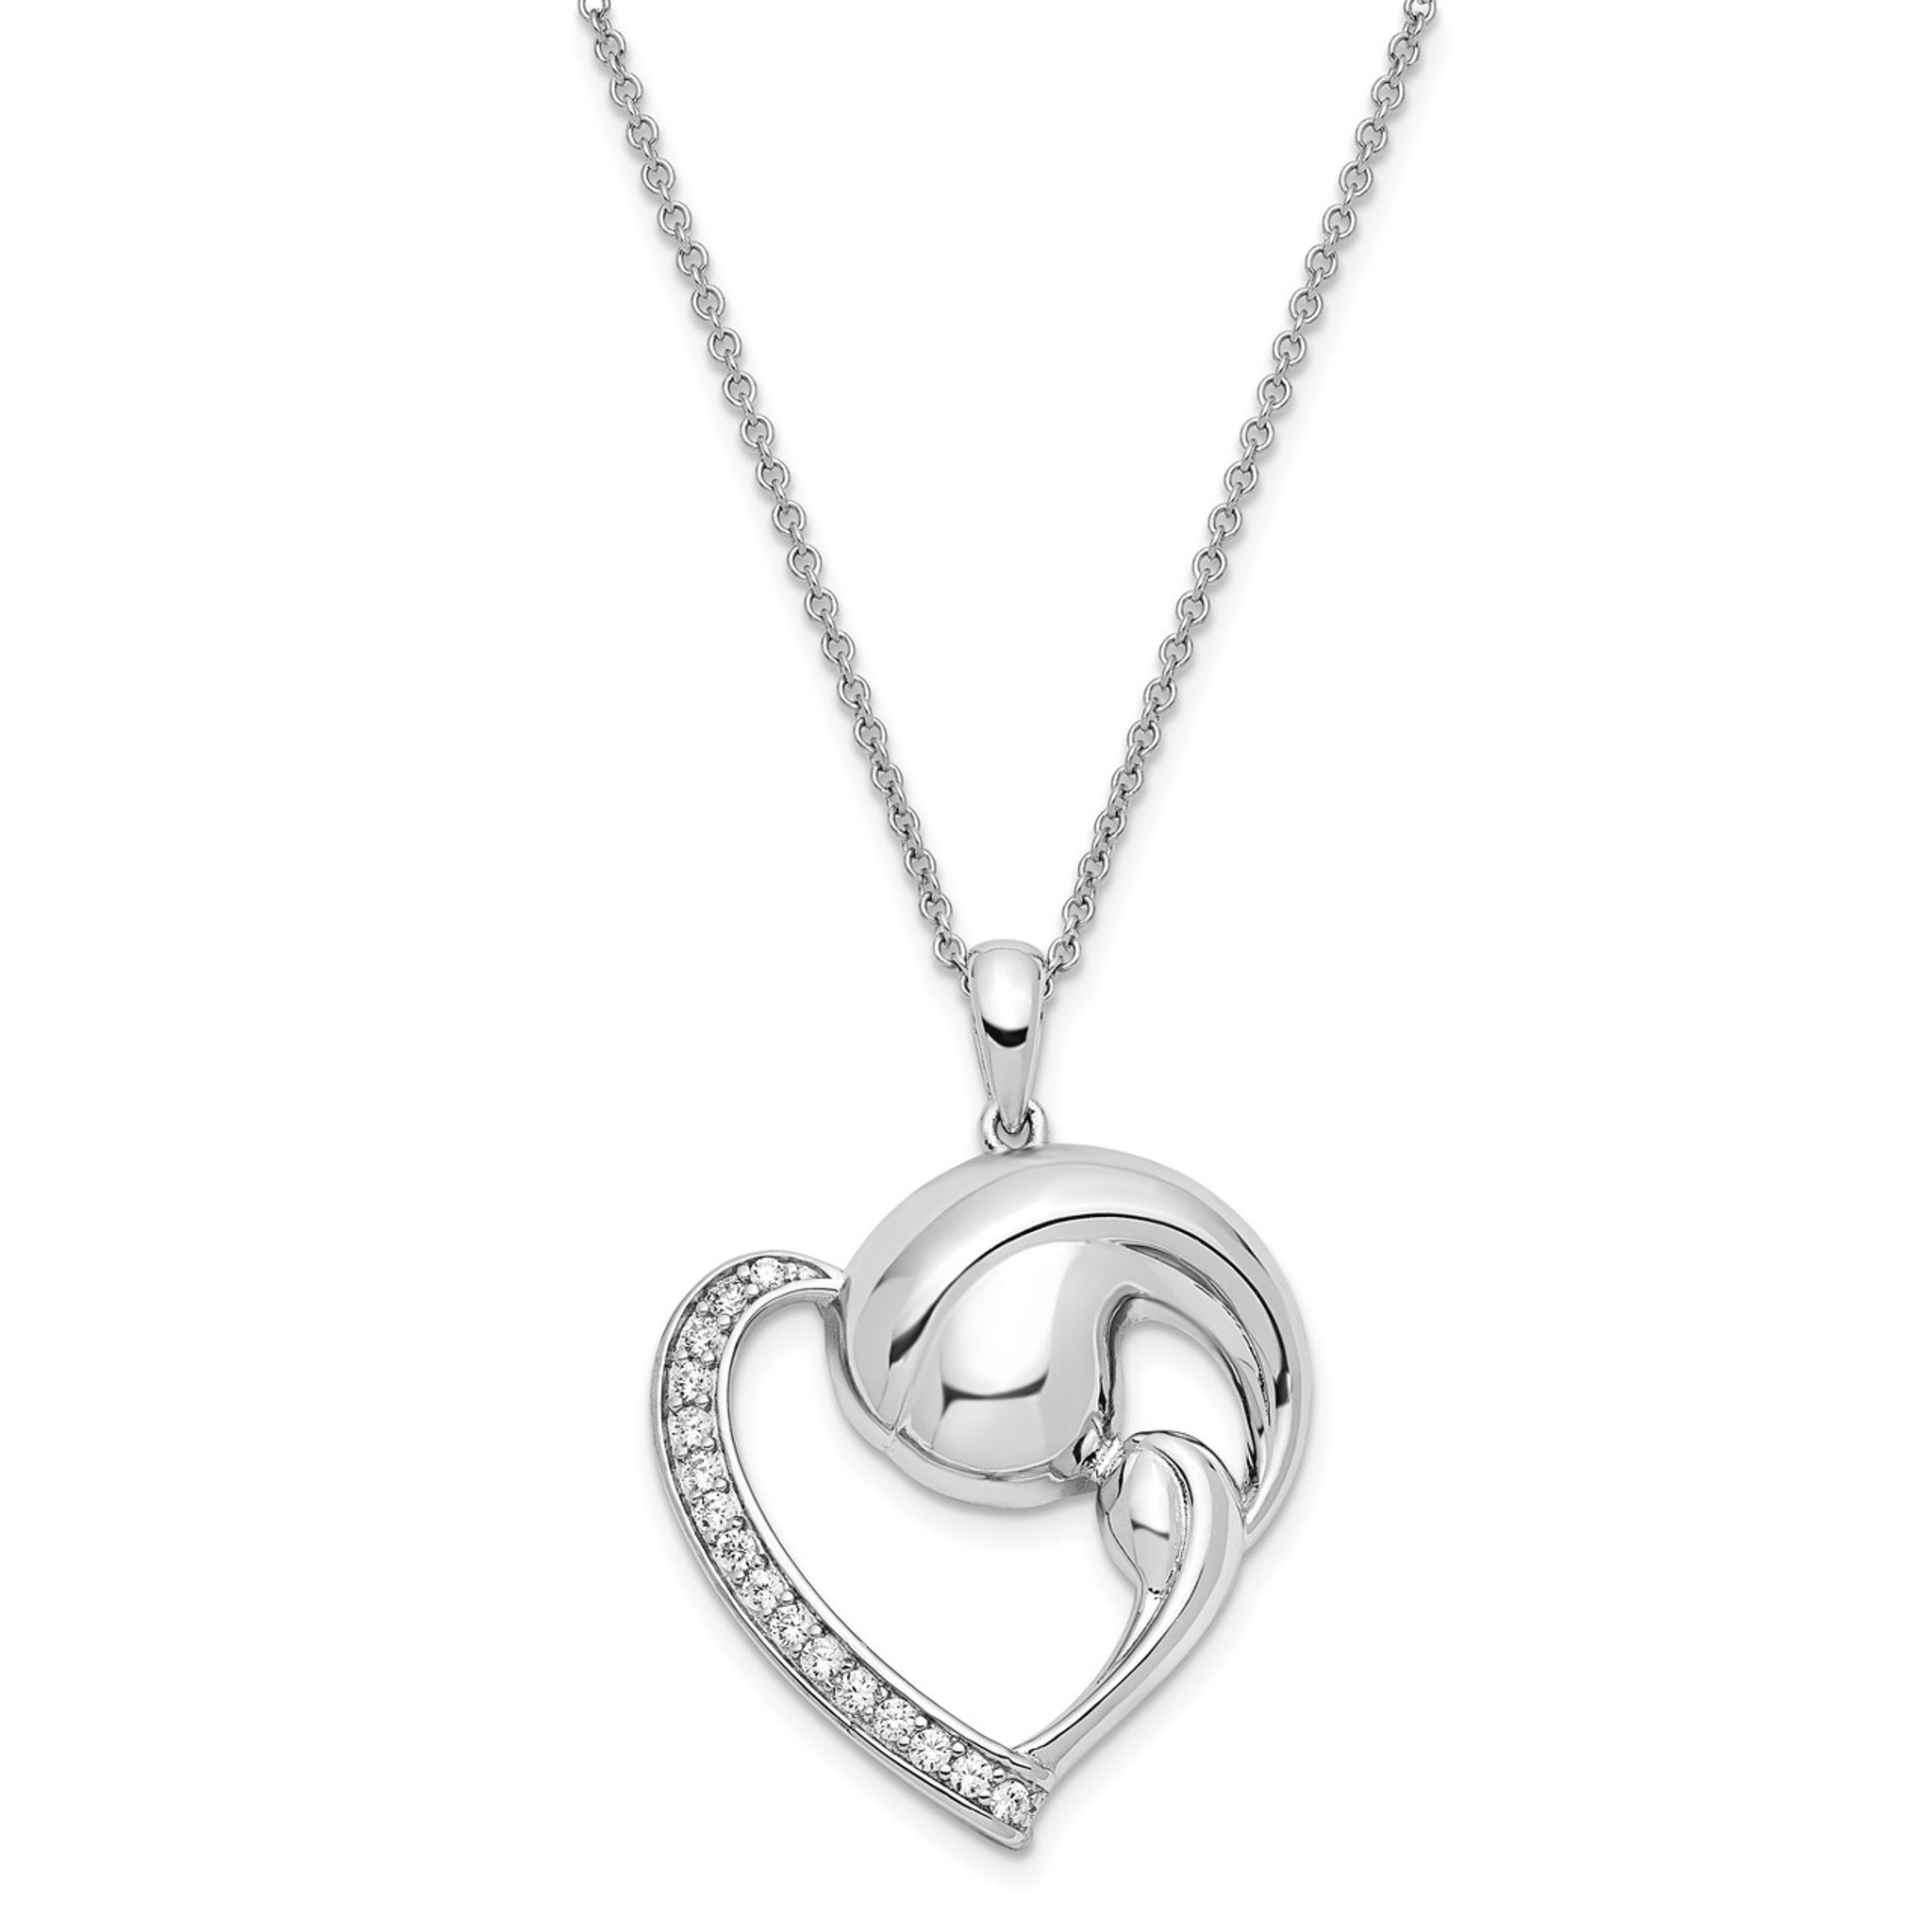 Sentimental Expressions Sterling Silver Friendship 18 Inch Necklace